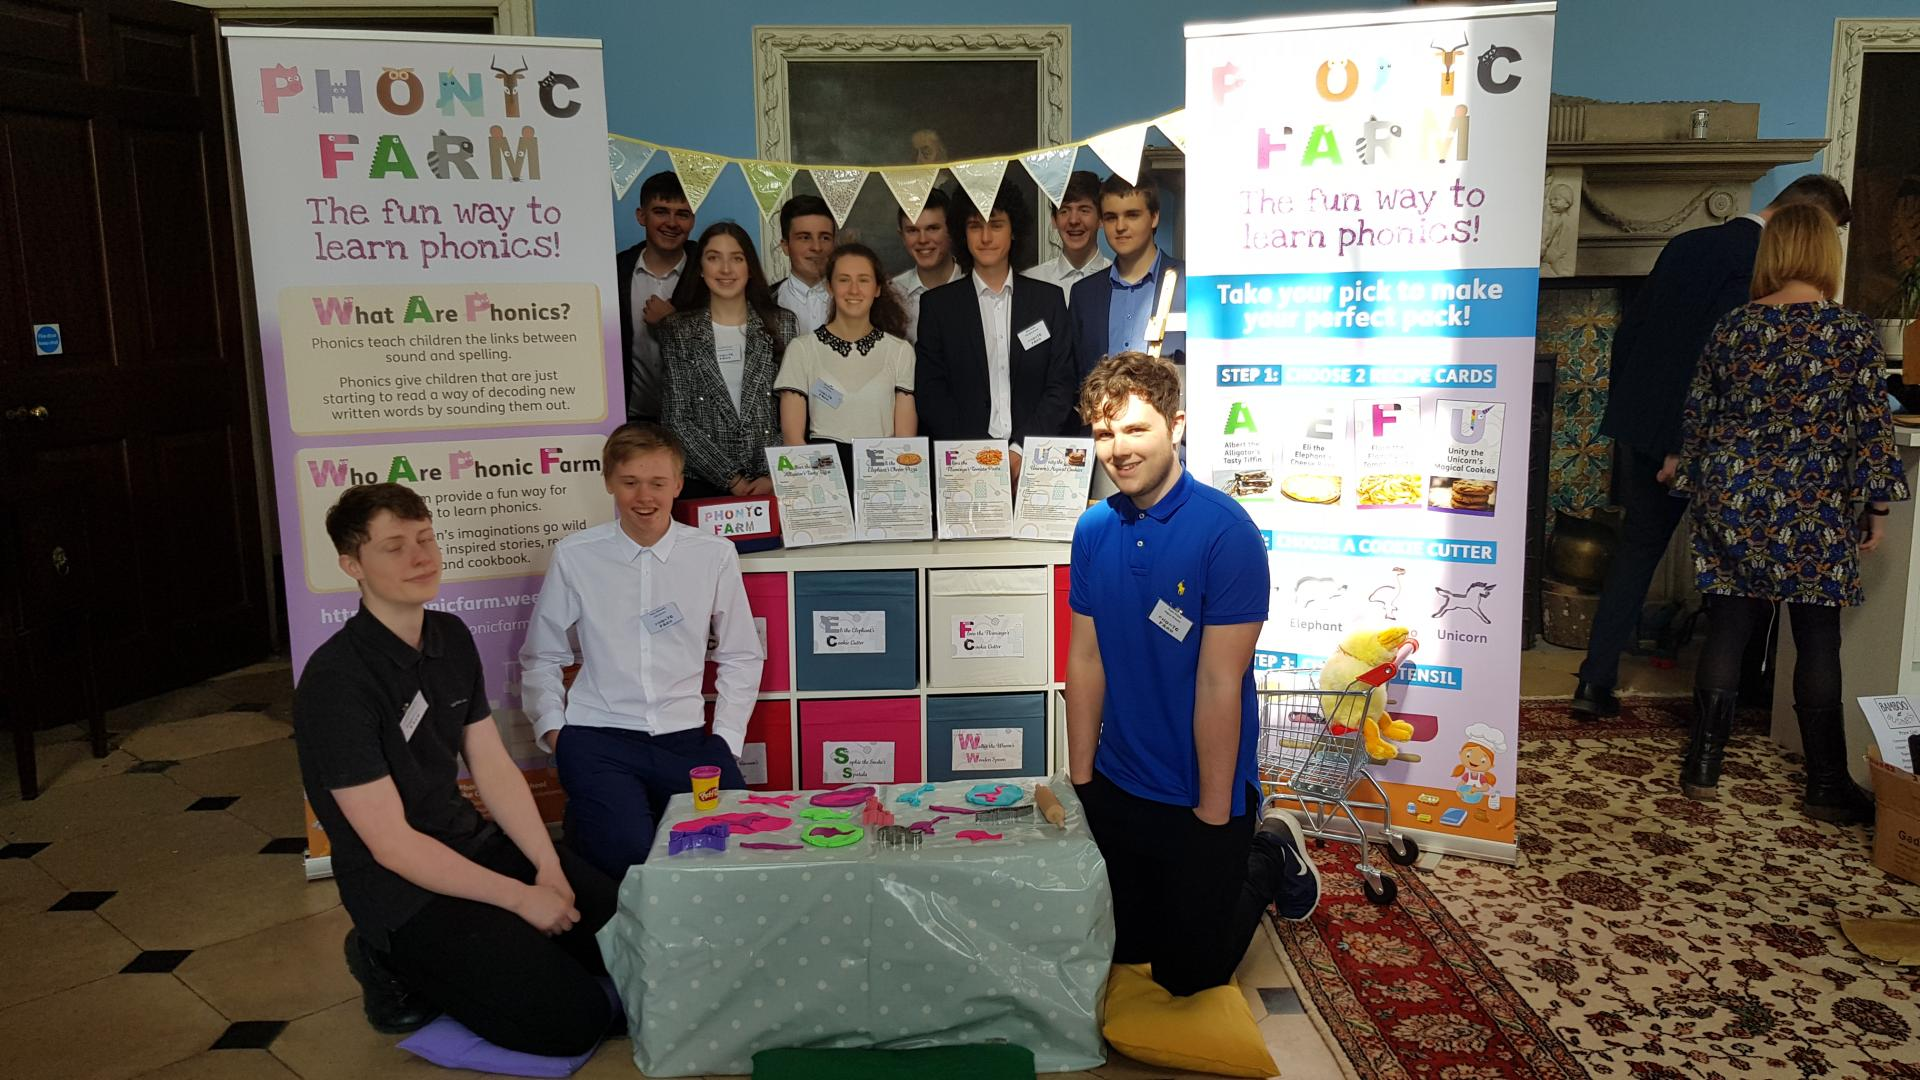 Phonic Farm Young Enterprise